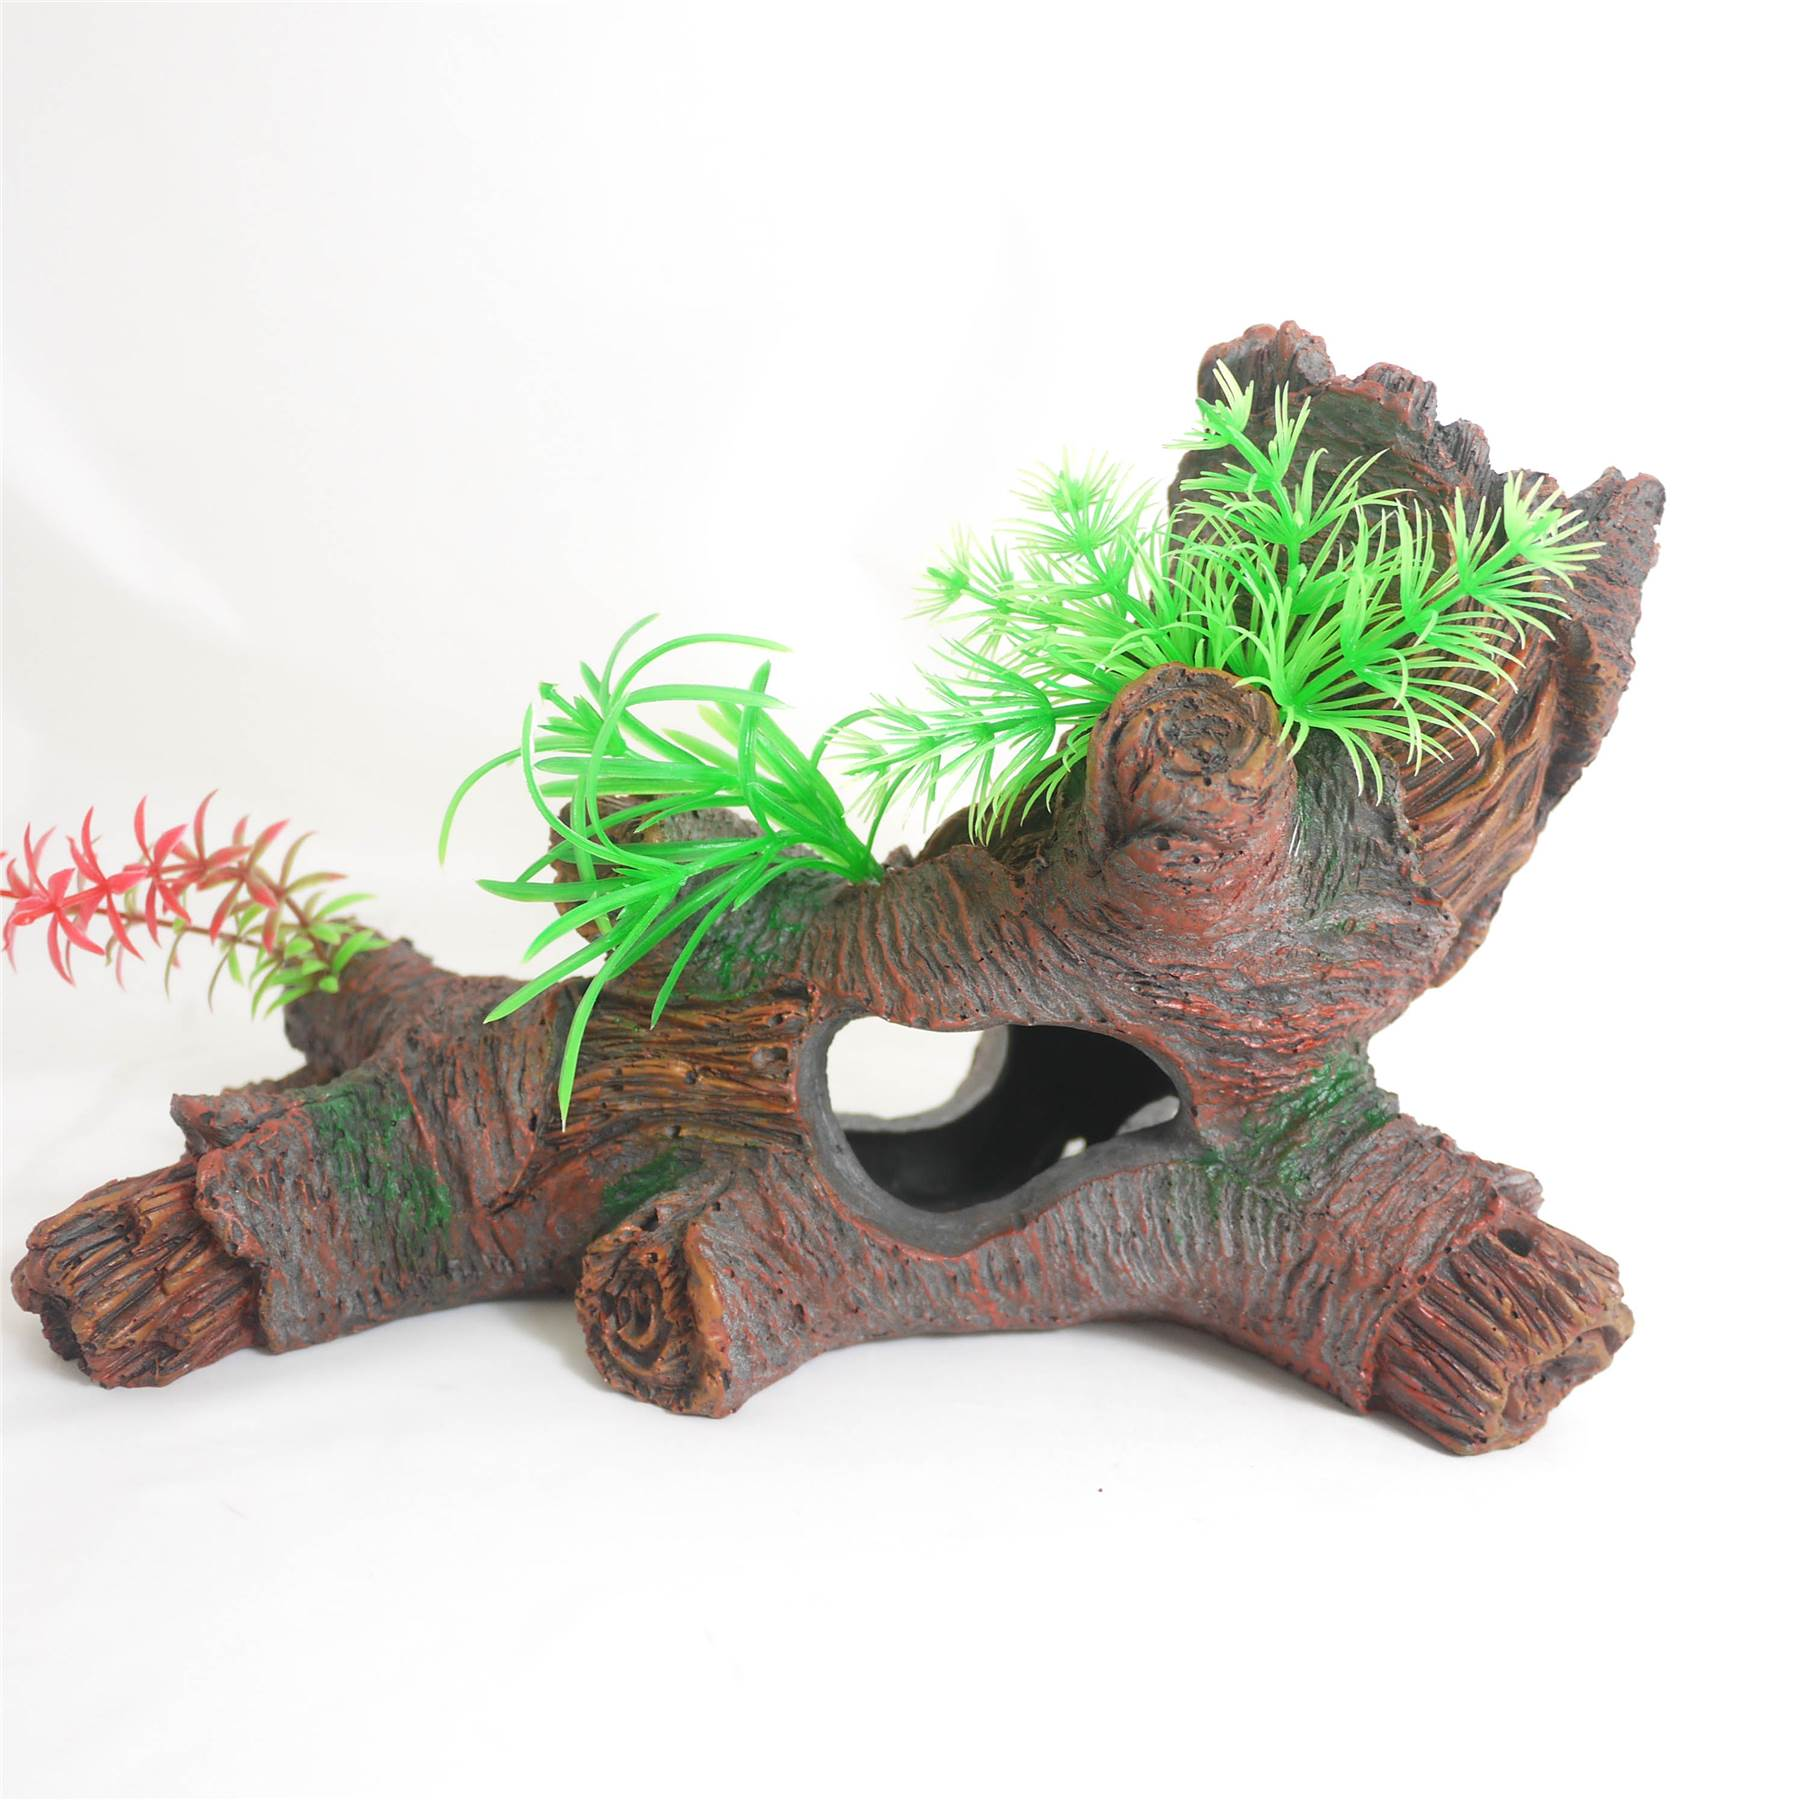 Aquarium resin bogwood drift wood log ornament fish tank for Aquarium log decoration